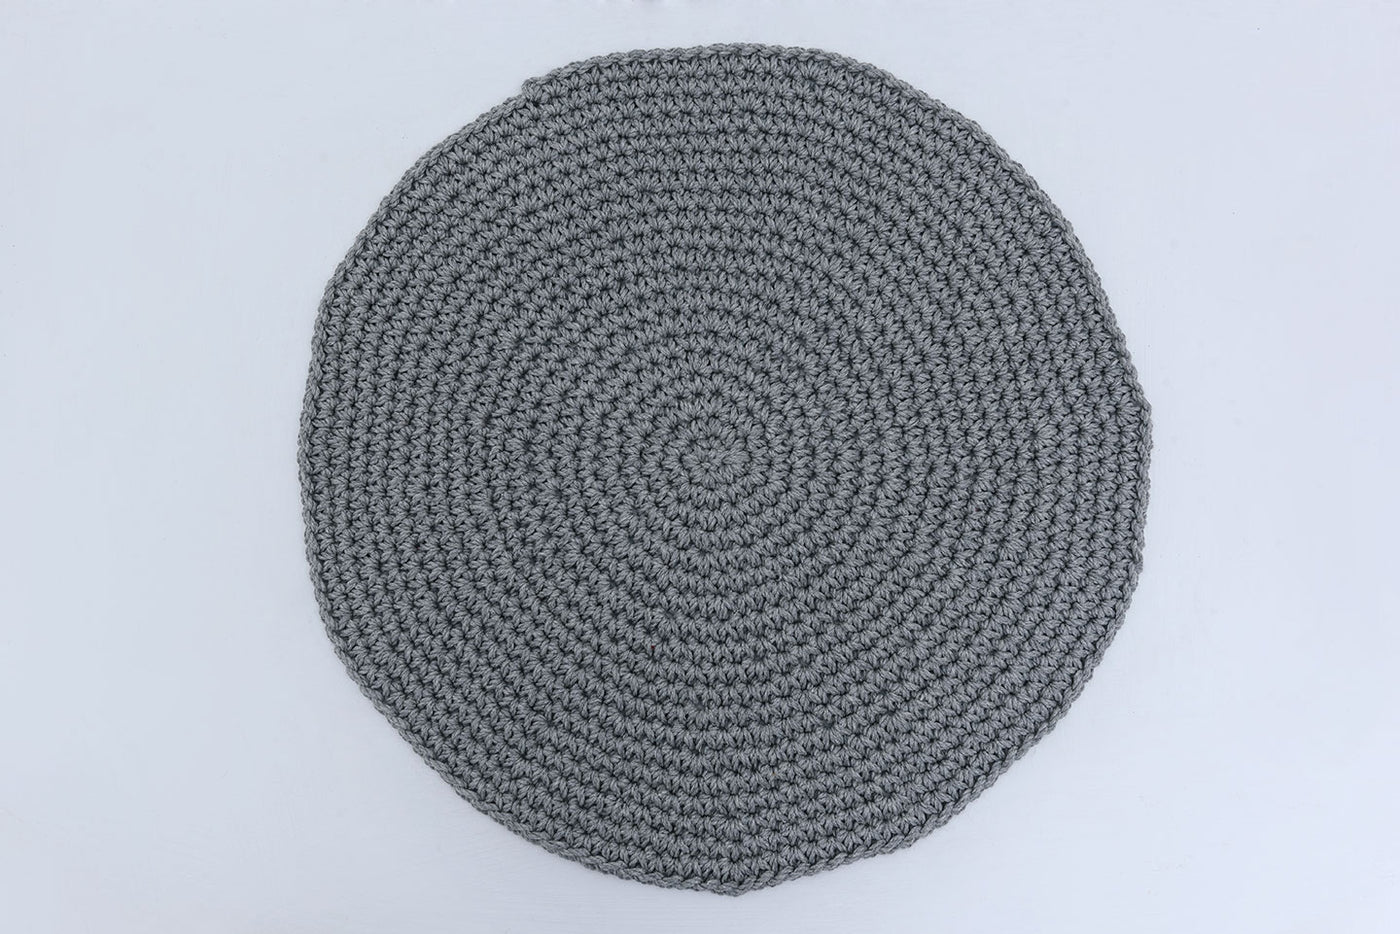 Light Charcoal Gray Cotton Placemats (Set of 4 or 6) - Round